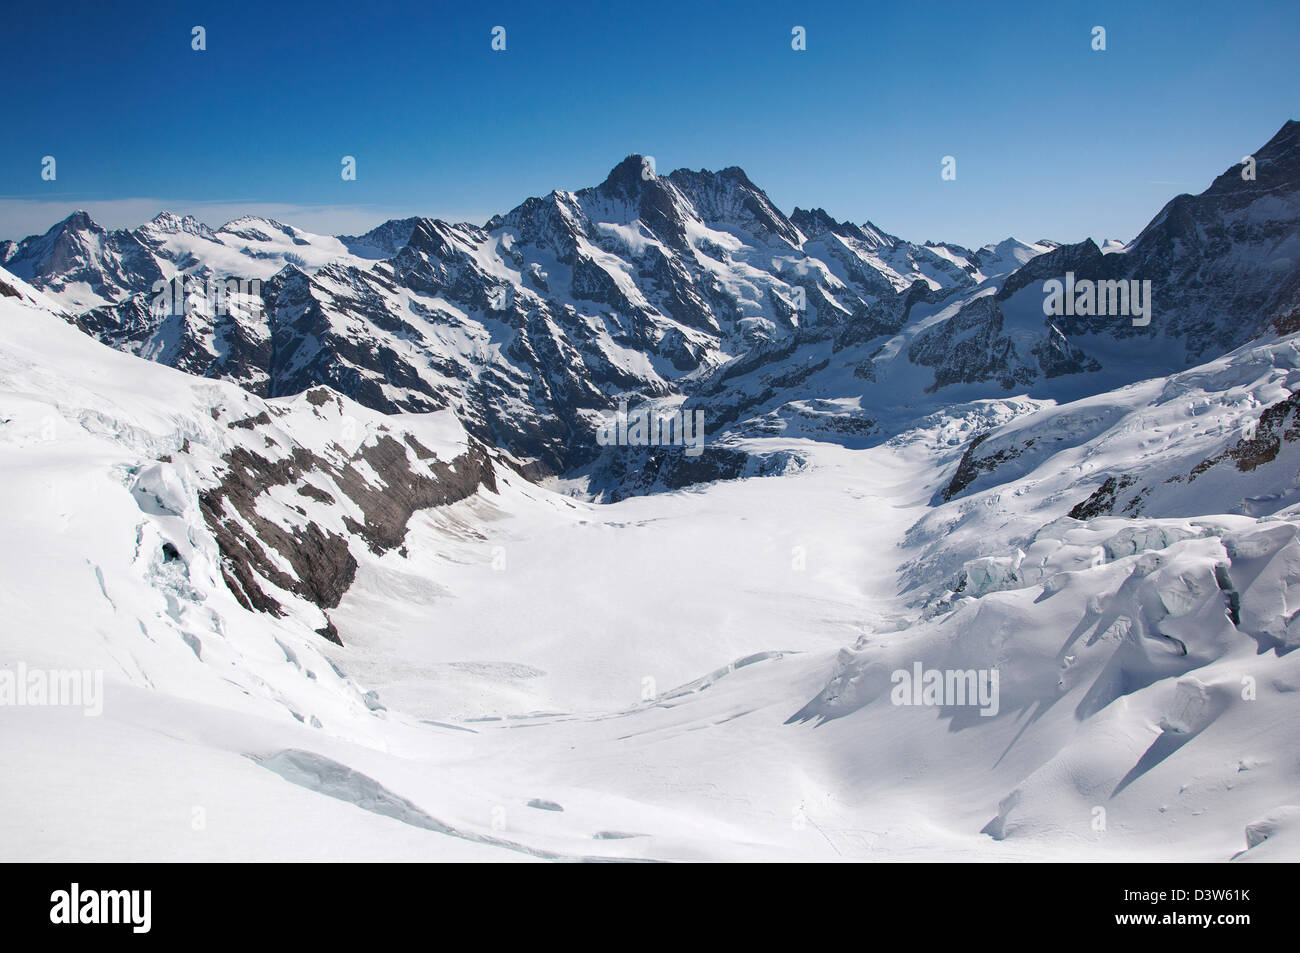 A view of snowcapped Swiss alpine mountain range seen from Eismeer tunnel station look-out point - Stock Image